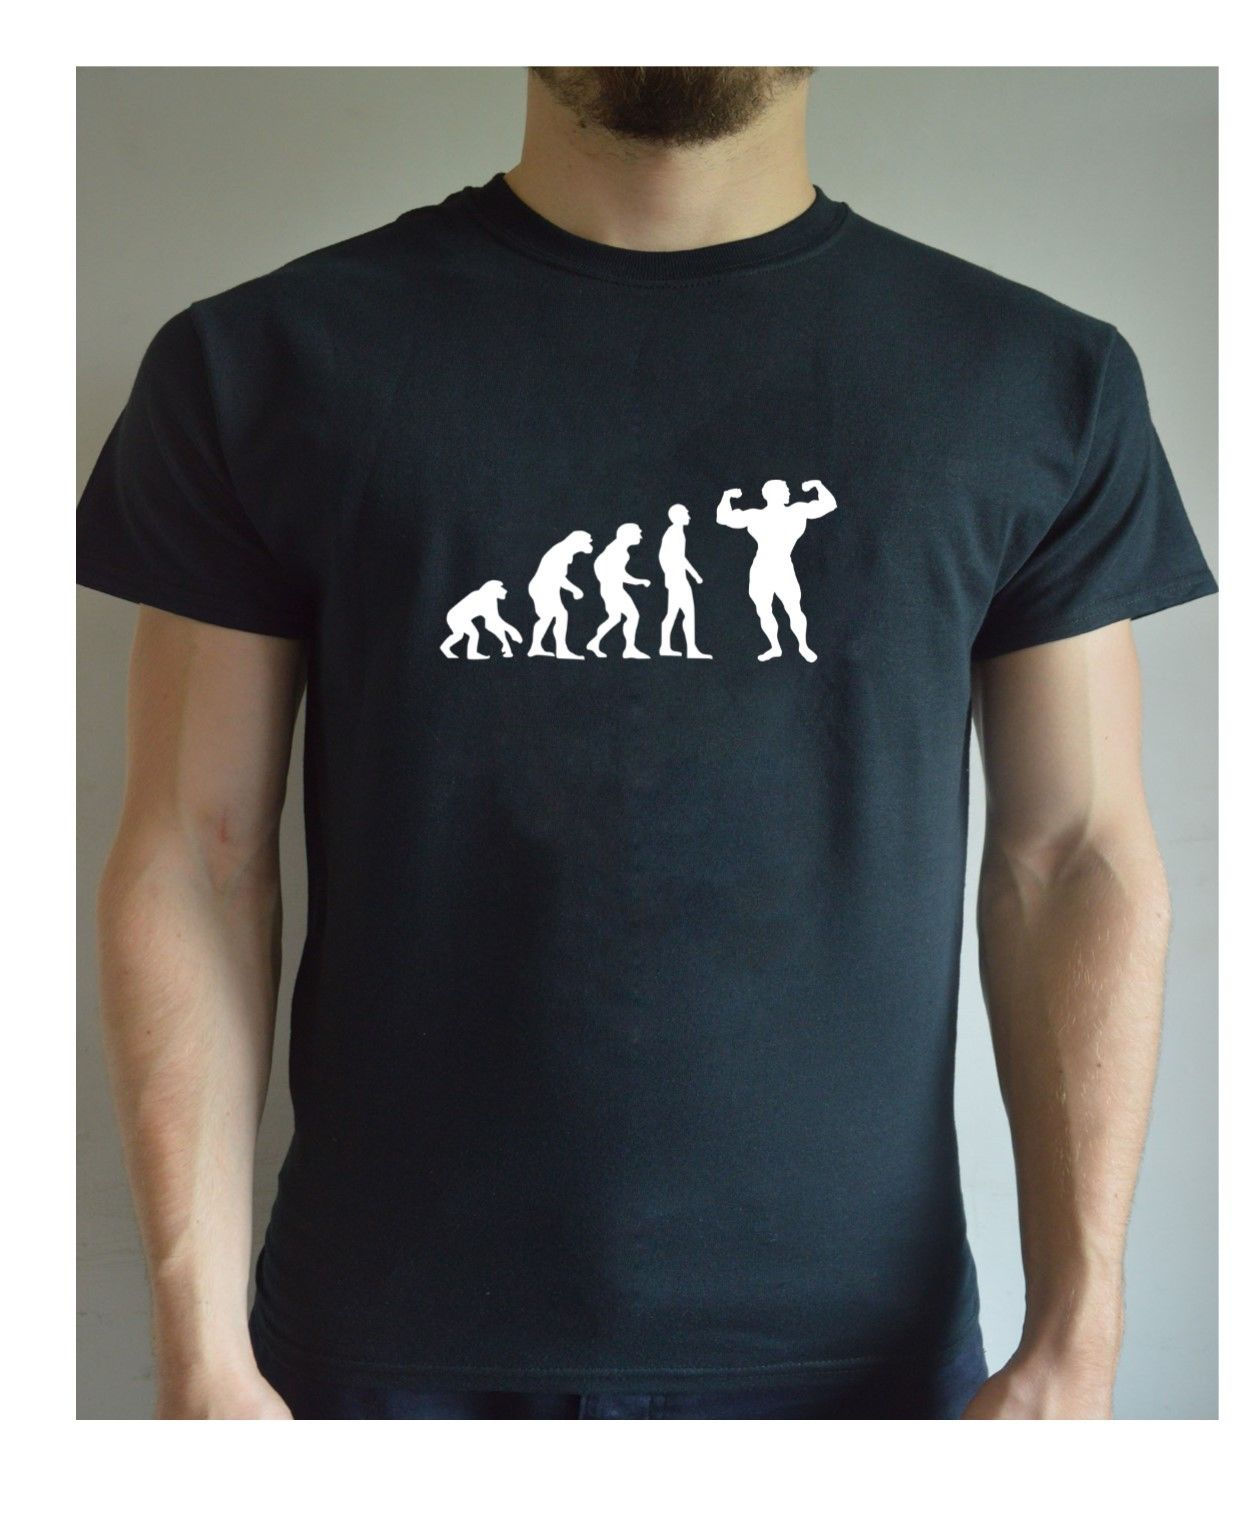 d64a563d Funny Printed T Shirt Evolution – Bodybuilding Personal Trainer Weight  Lifting